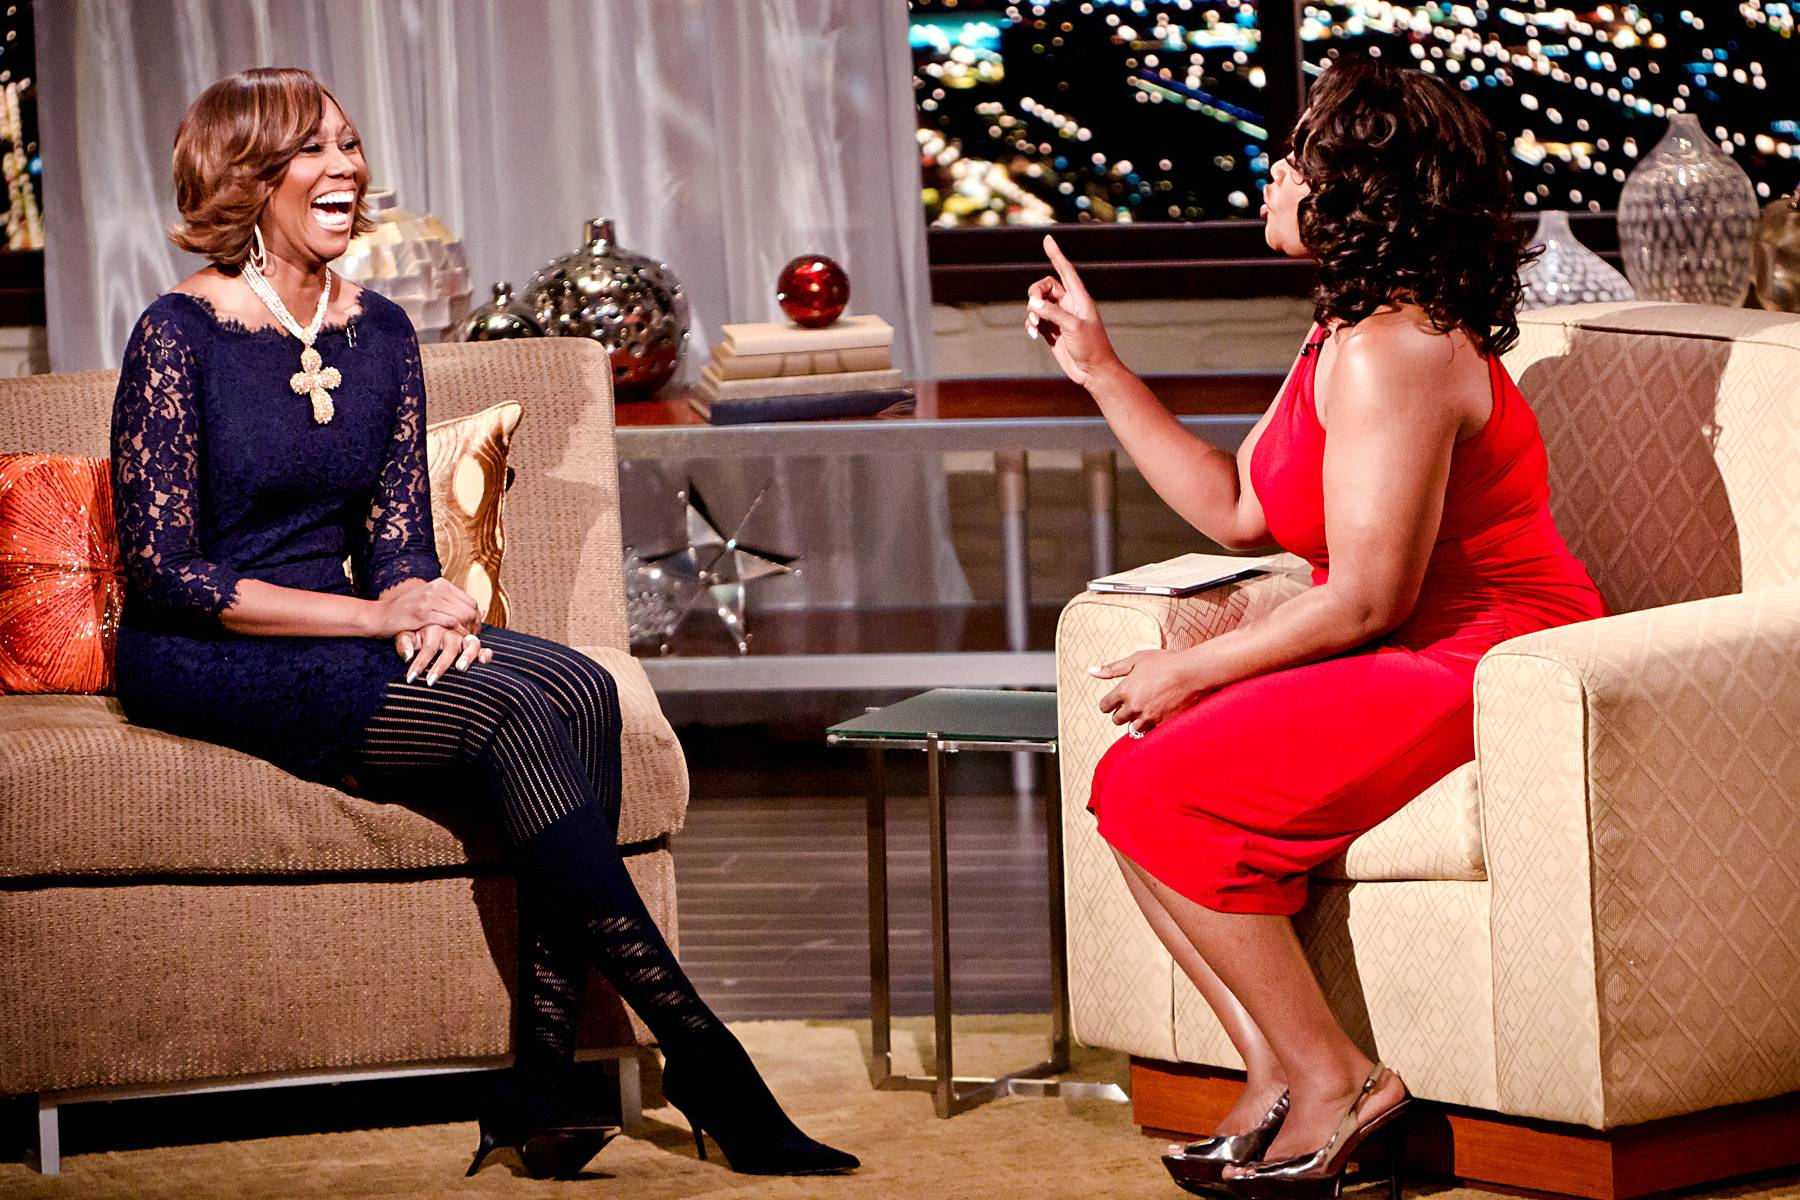 Radio Saved My Life - Adams currently hosts her own radio show and admits that one of the most rewarding aspects of the show is when listeners call in letting her know that it was her music that helped save them.\r(Photo: Darnell Williams/BET)